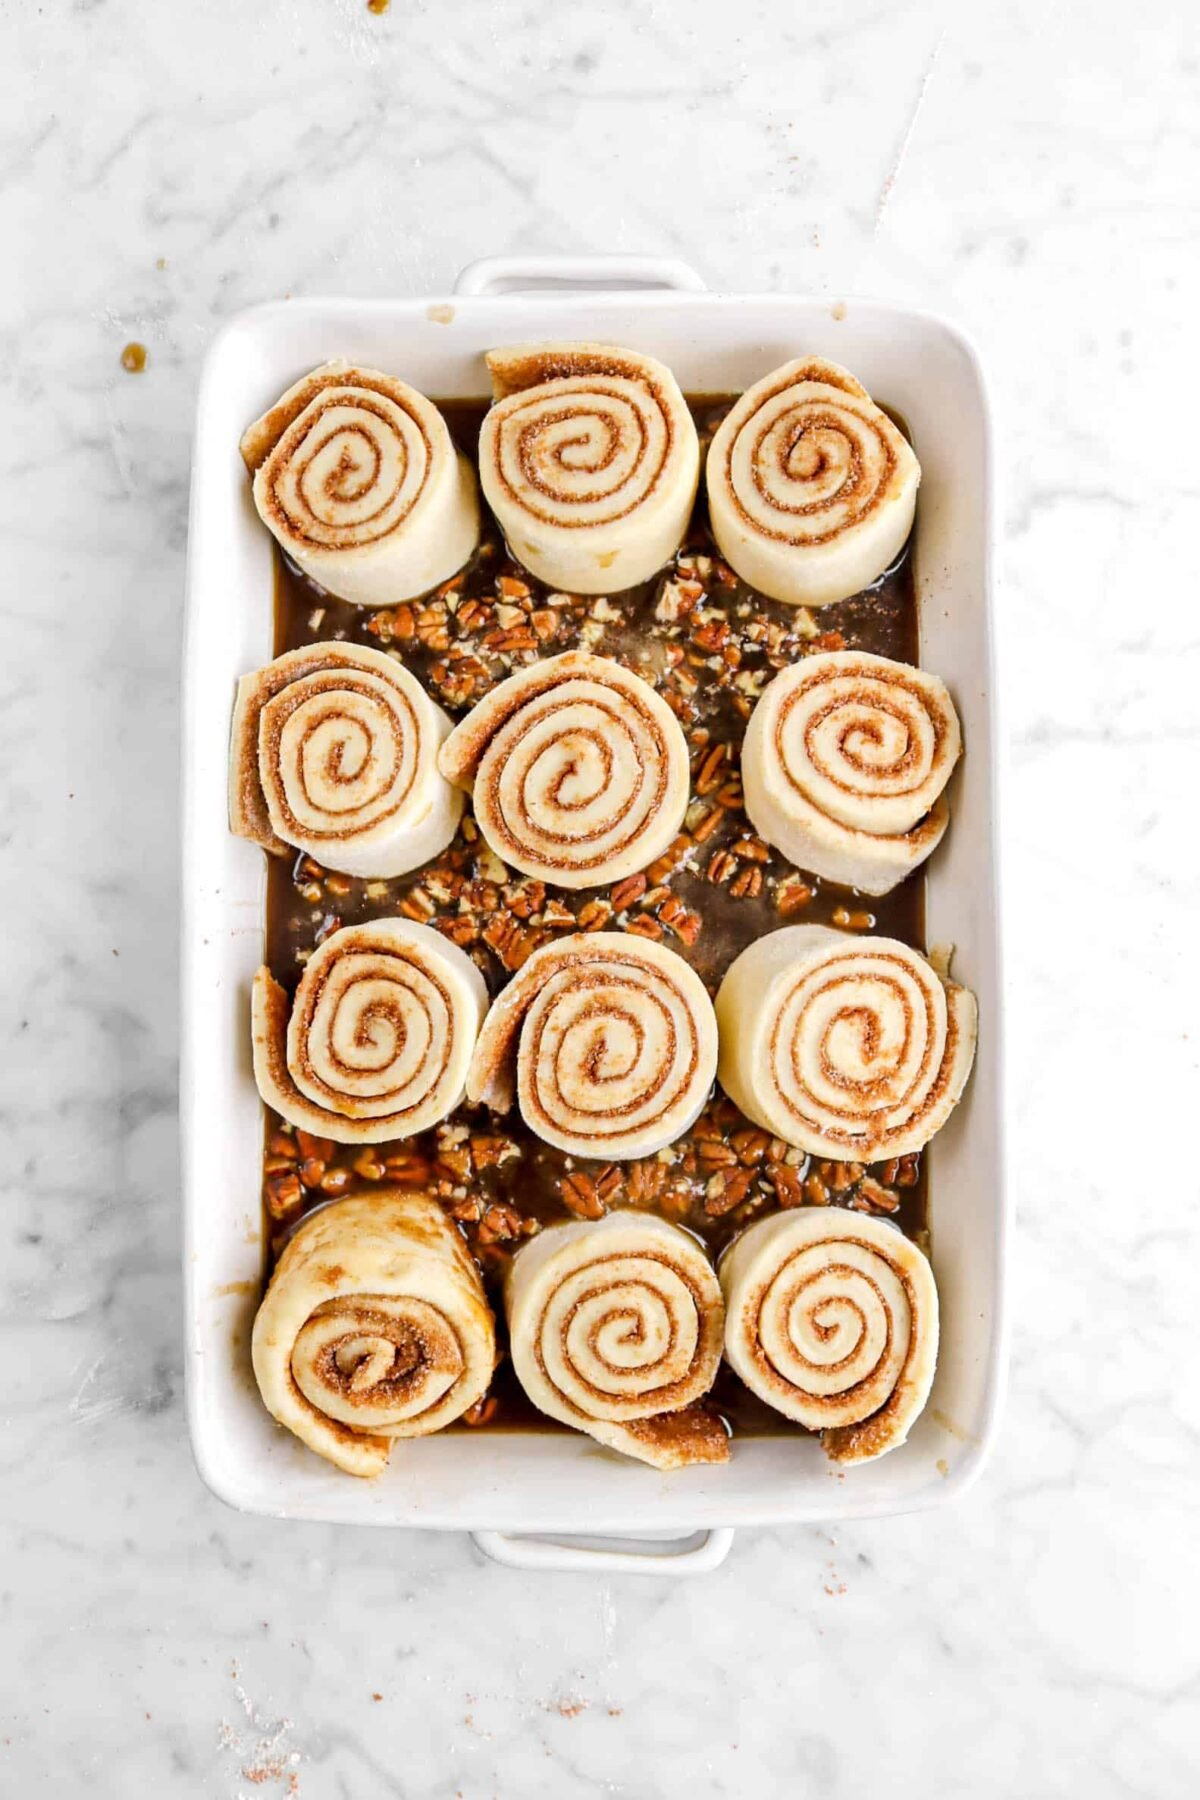 rolls in syrup in white casserole